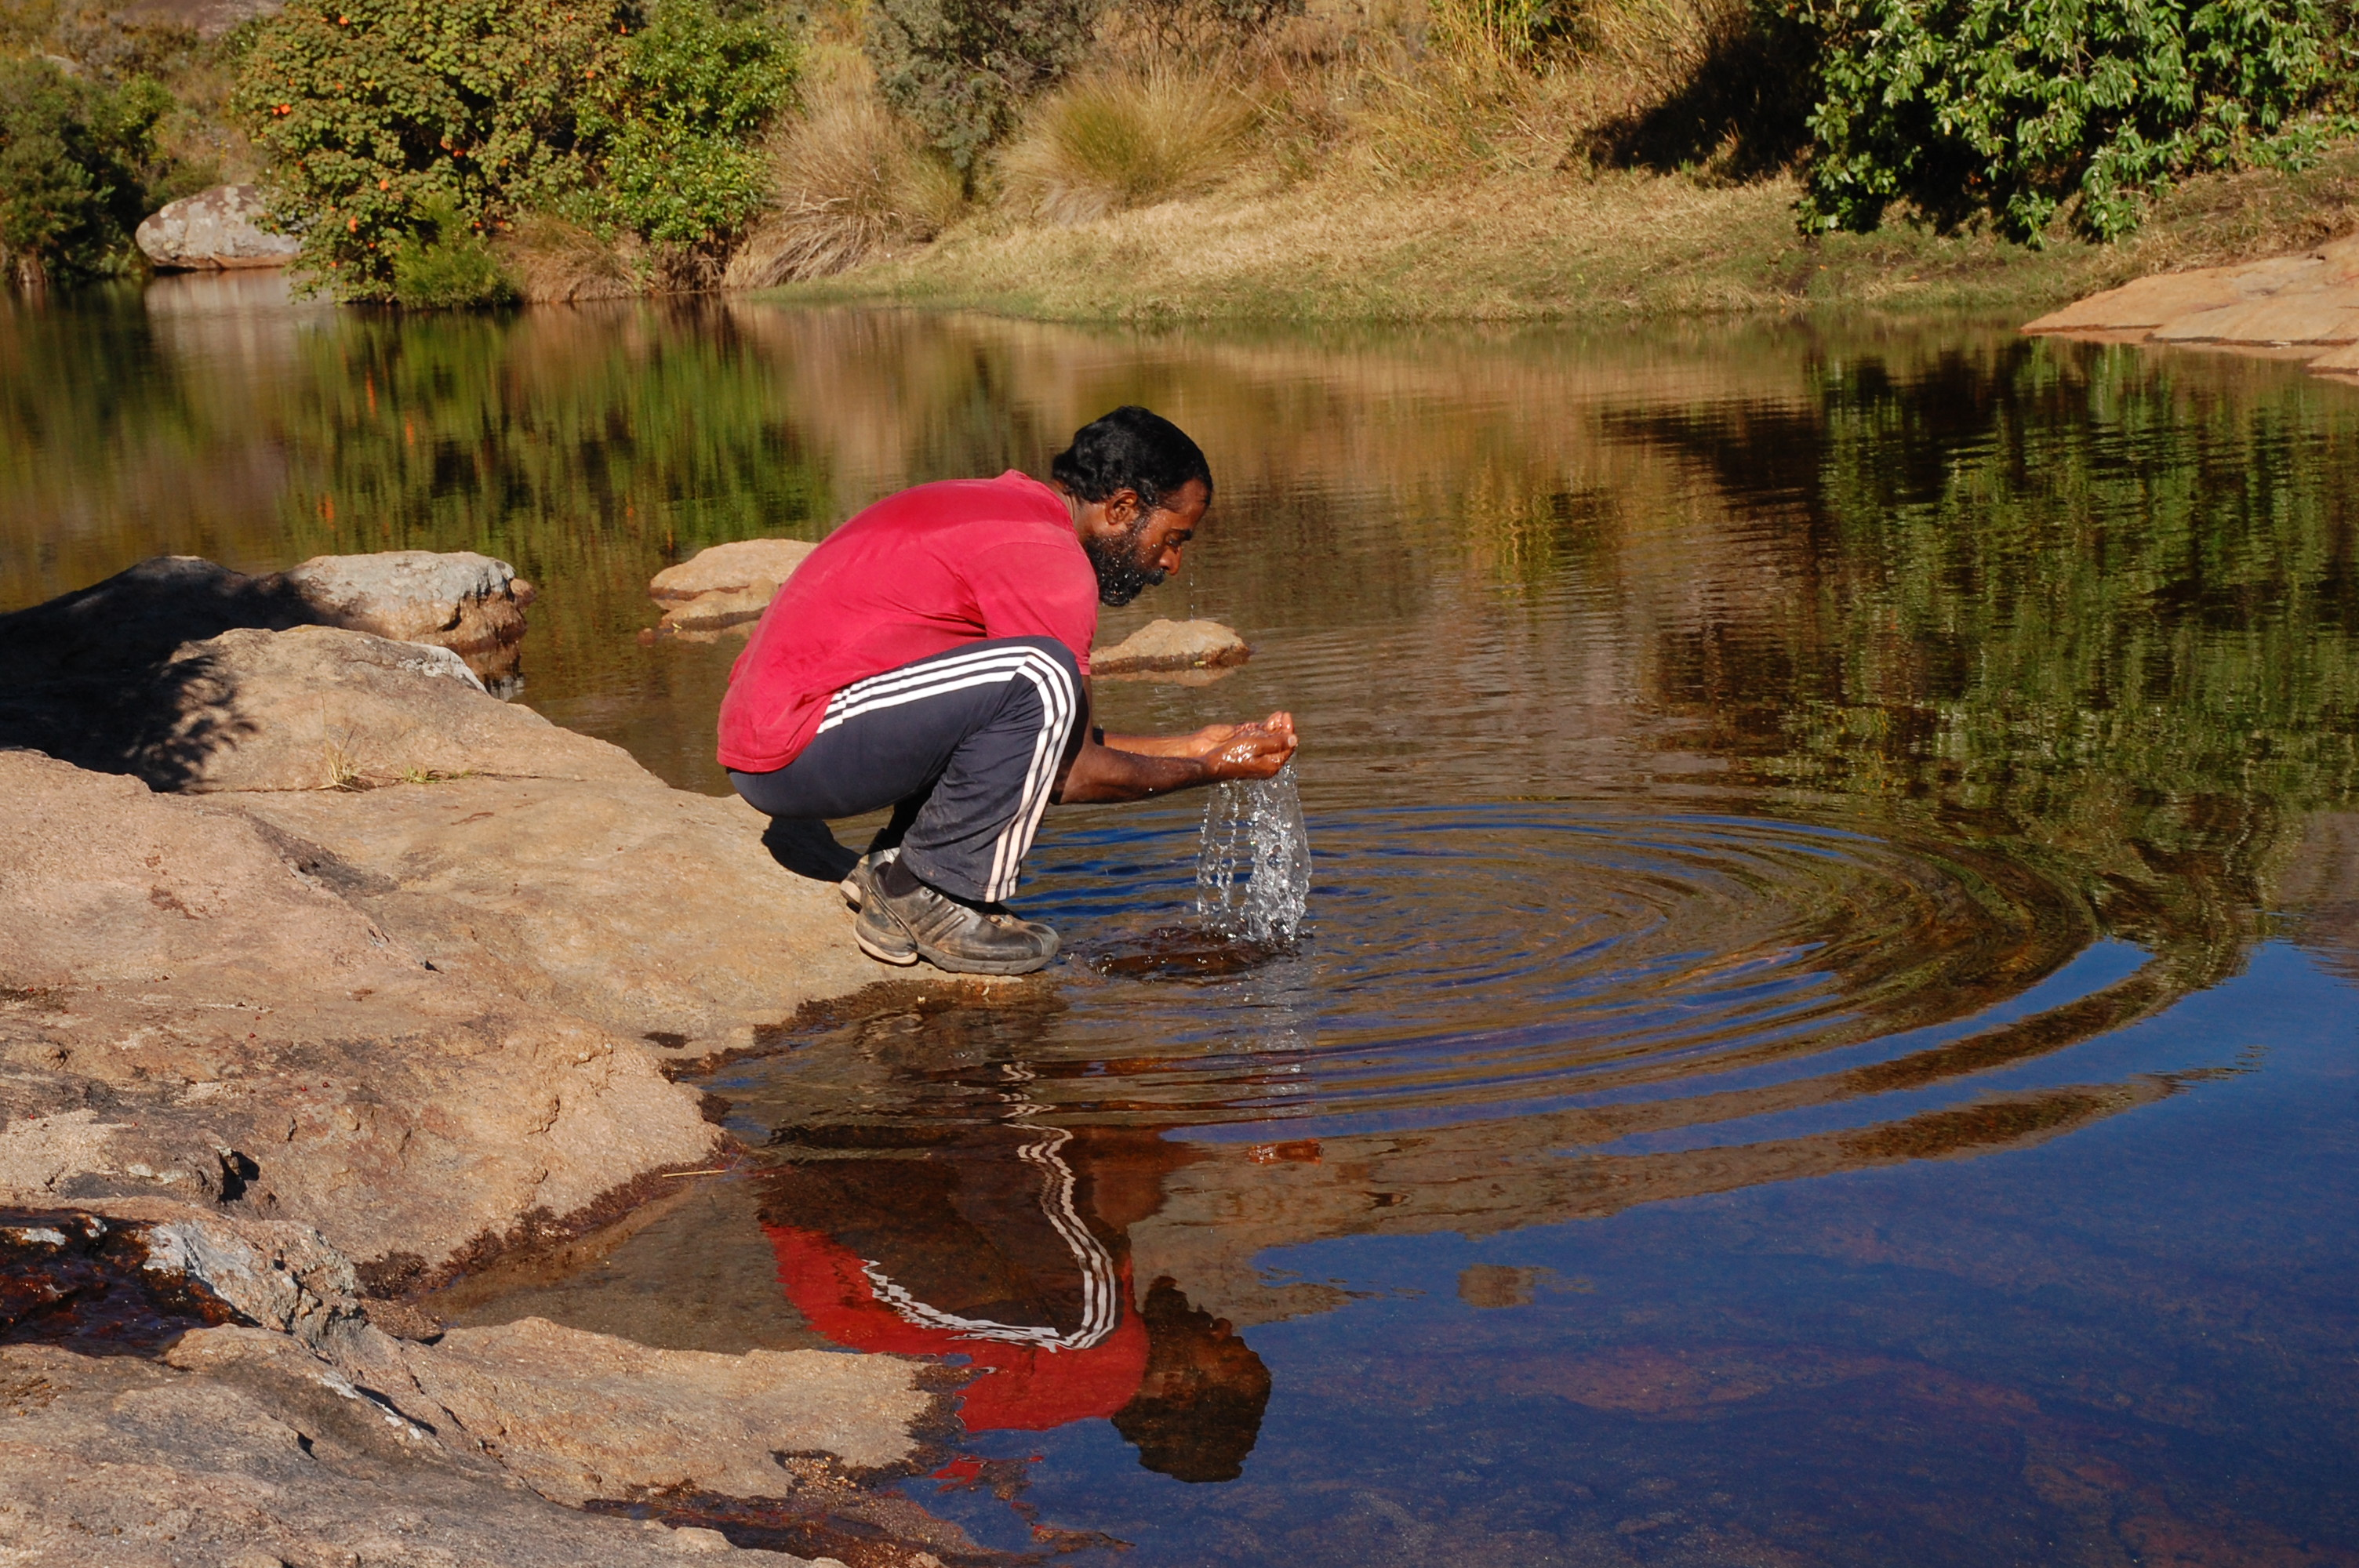 Drinking water from Antaranoombi river